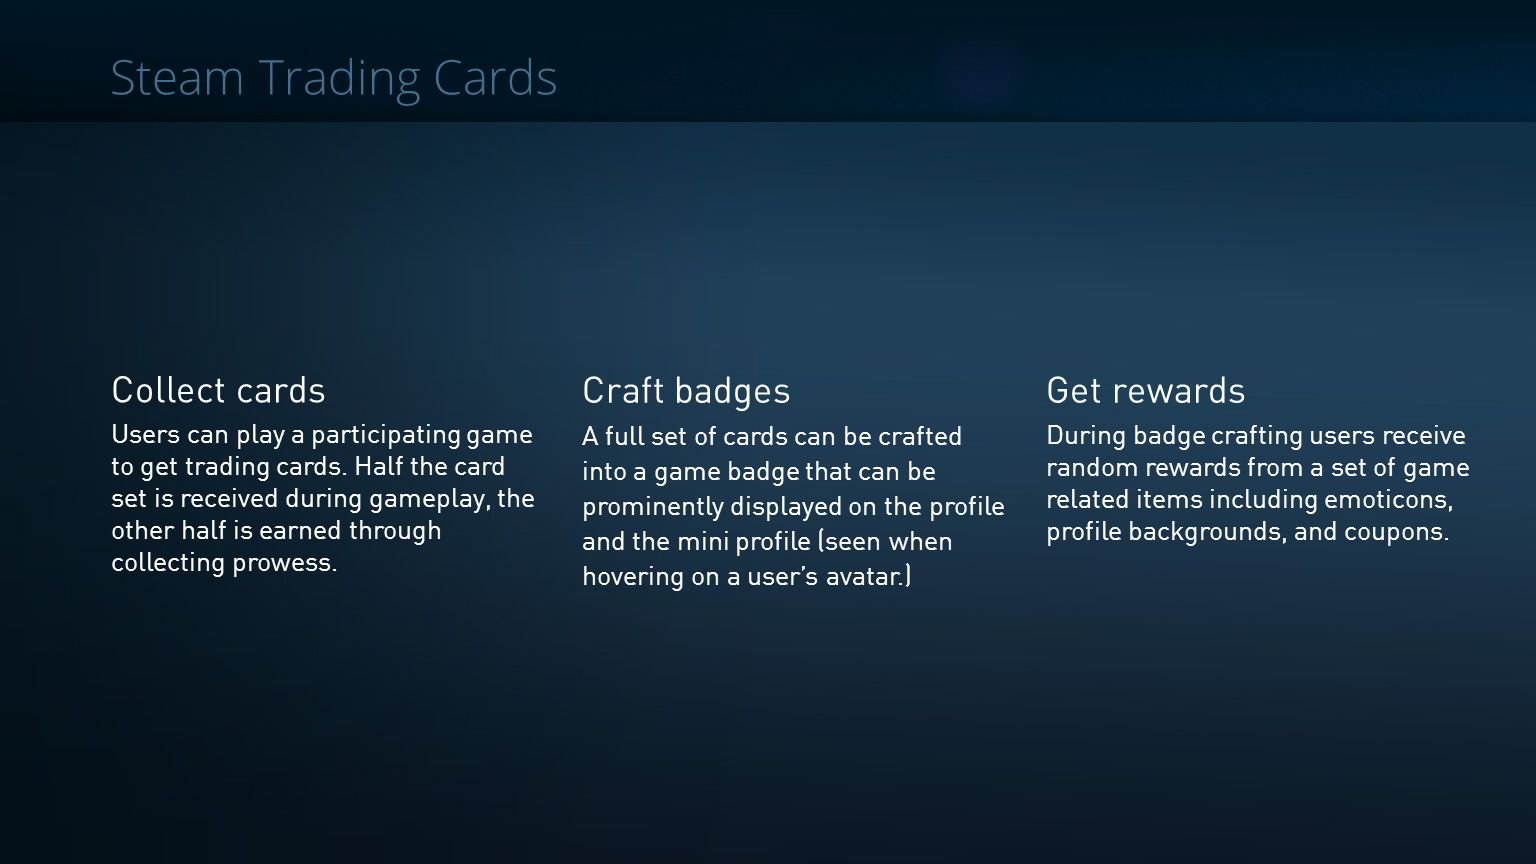 Steam Trading Cards Collect cards Craft badges Get rewards